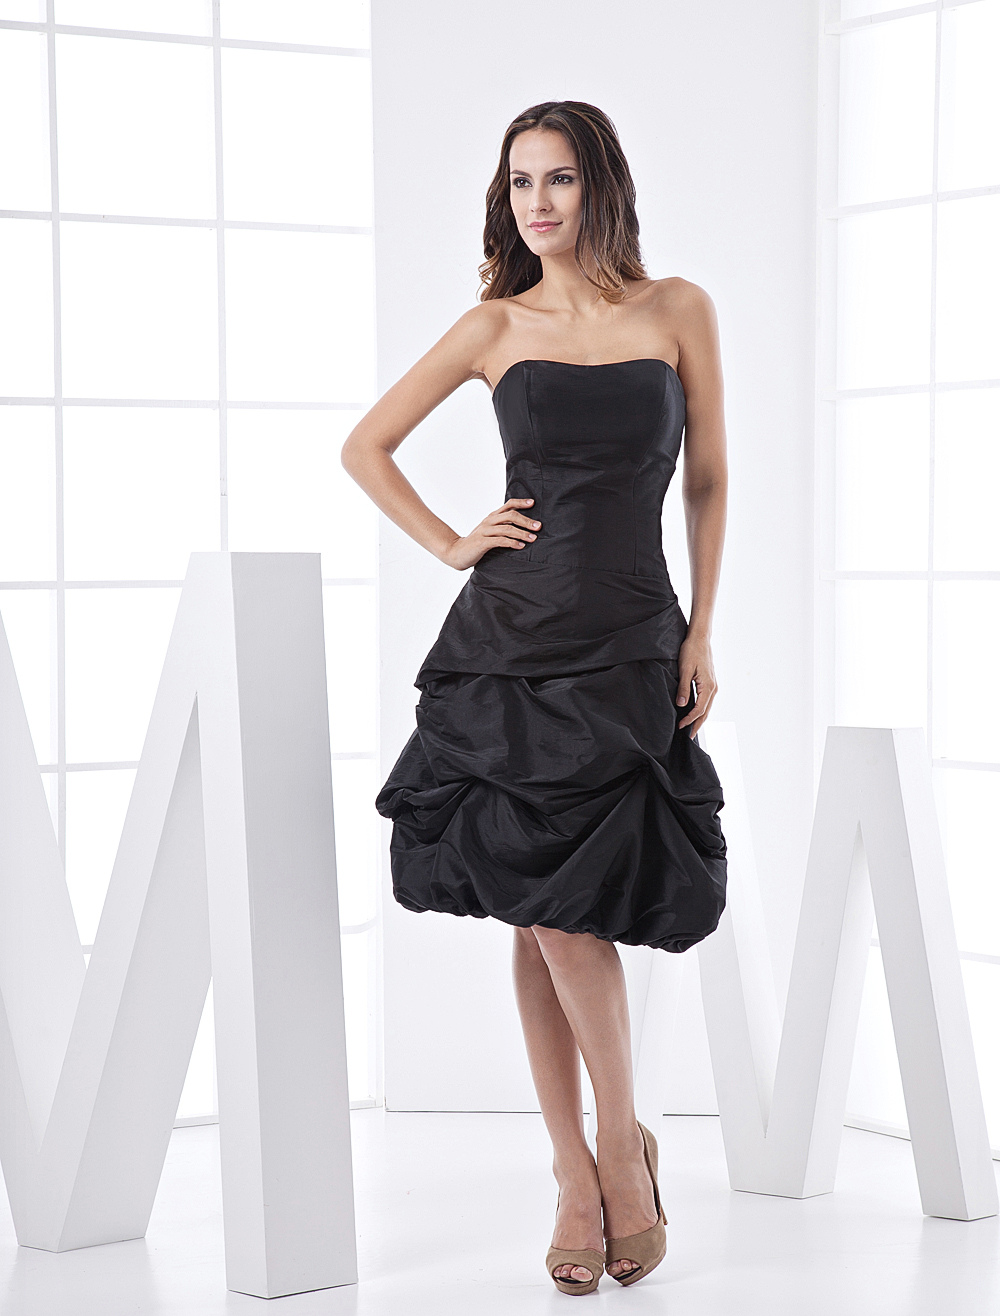 Black Cocktail Dress with Strapless Backless Ruched Taffeta Dress